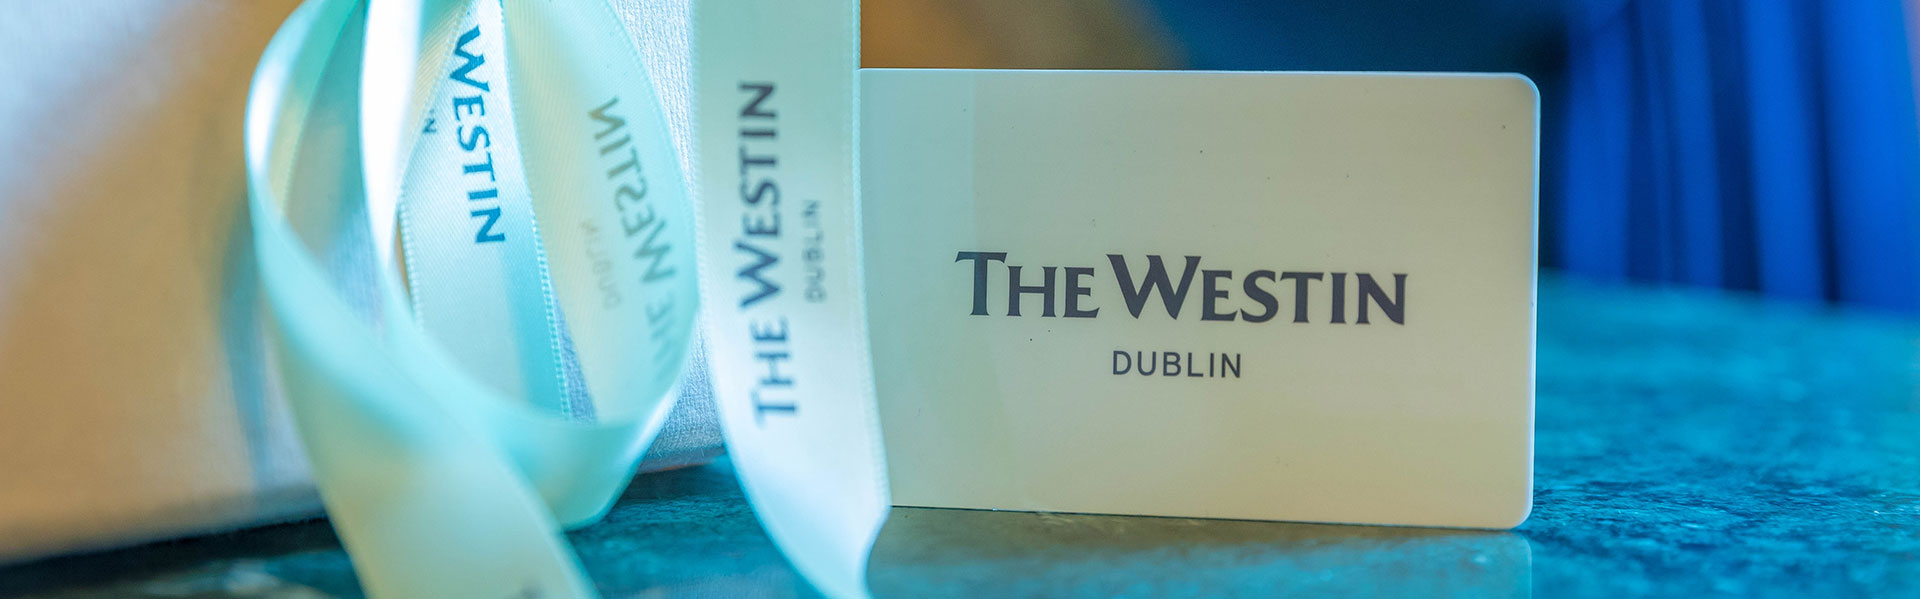 Vouchers at the Westin Dublin